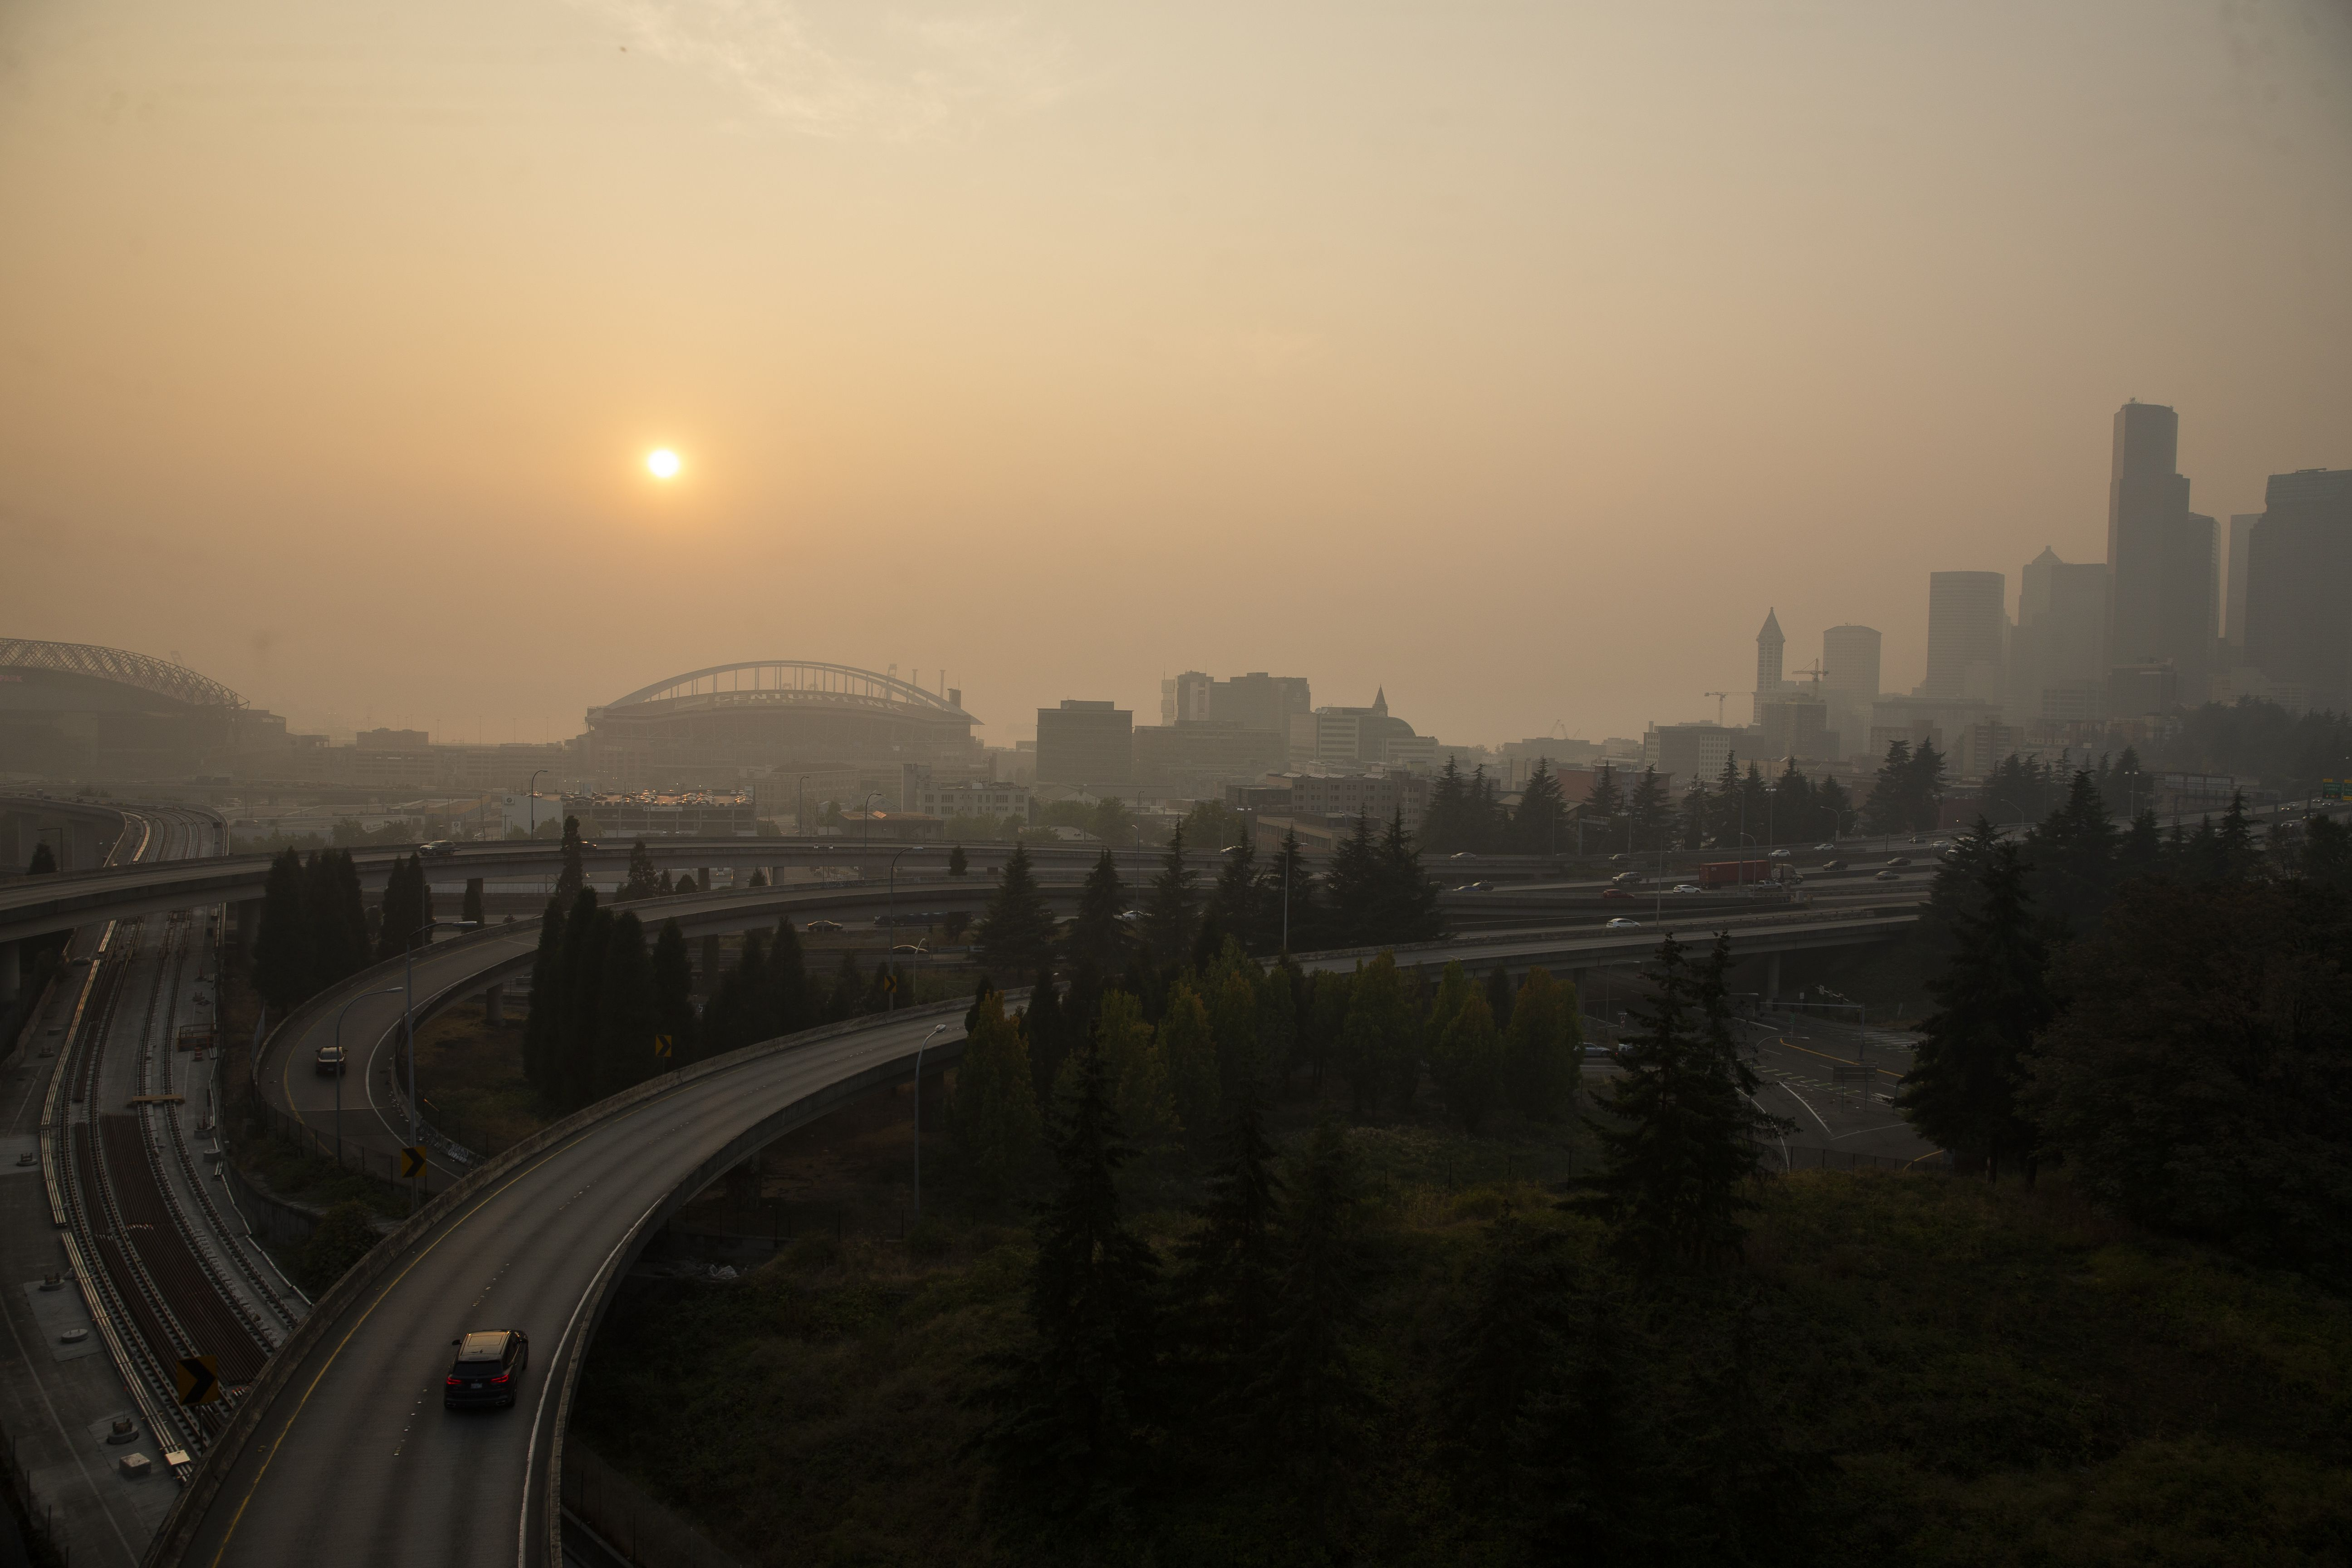 Cars drive on I-5 in front of a hazy Seattle skyline due to wildfire smoke on September 11, 2020 in Seattle, Washington.